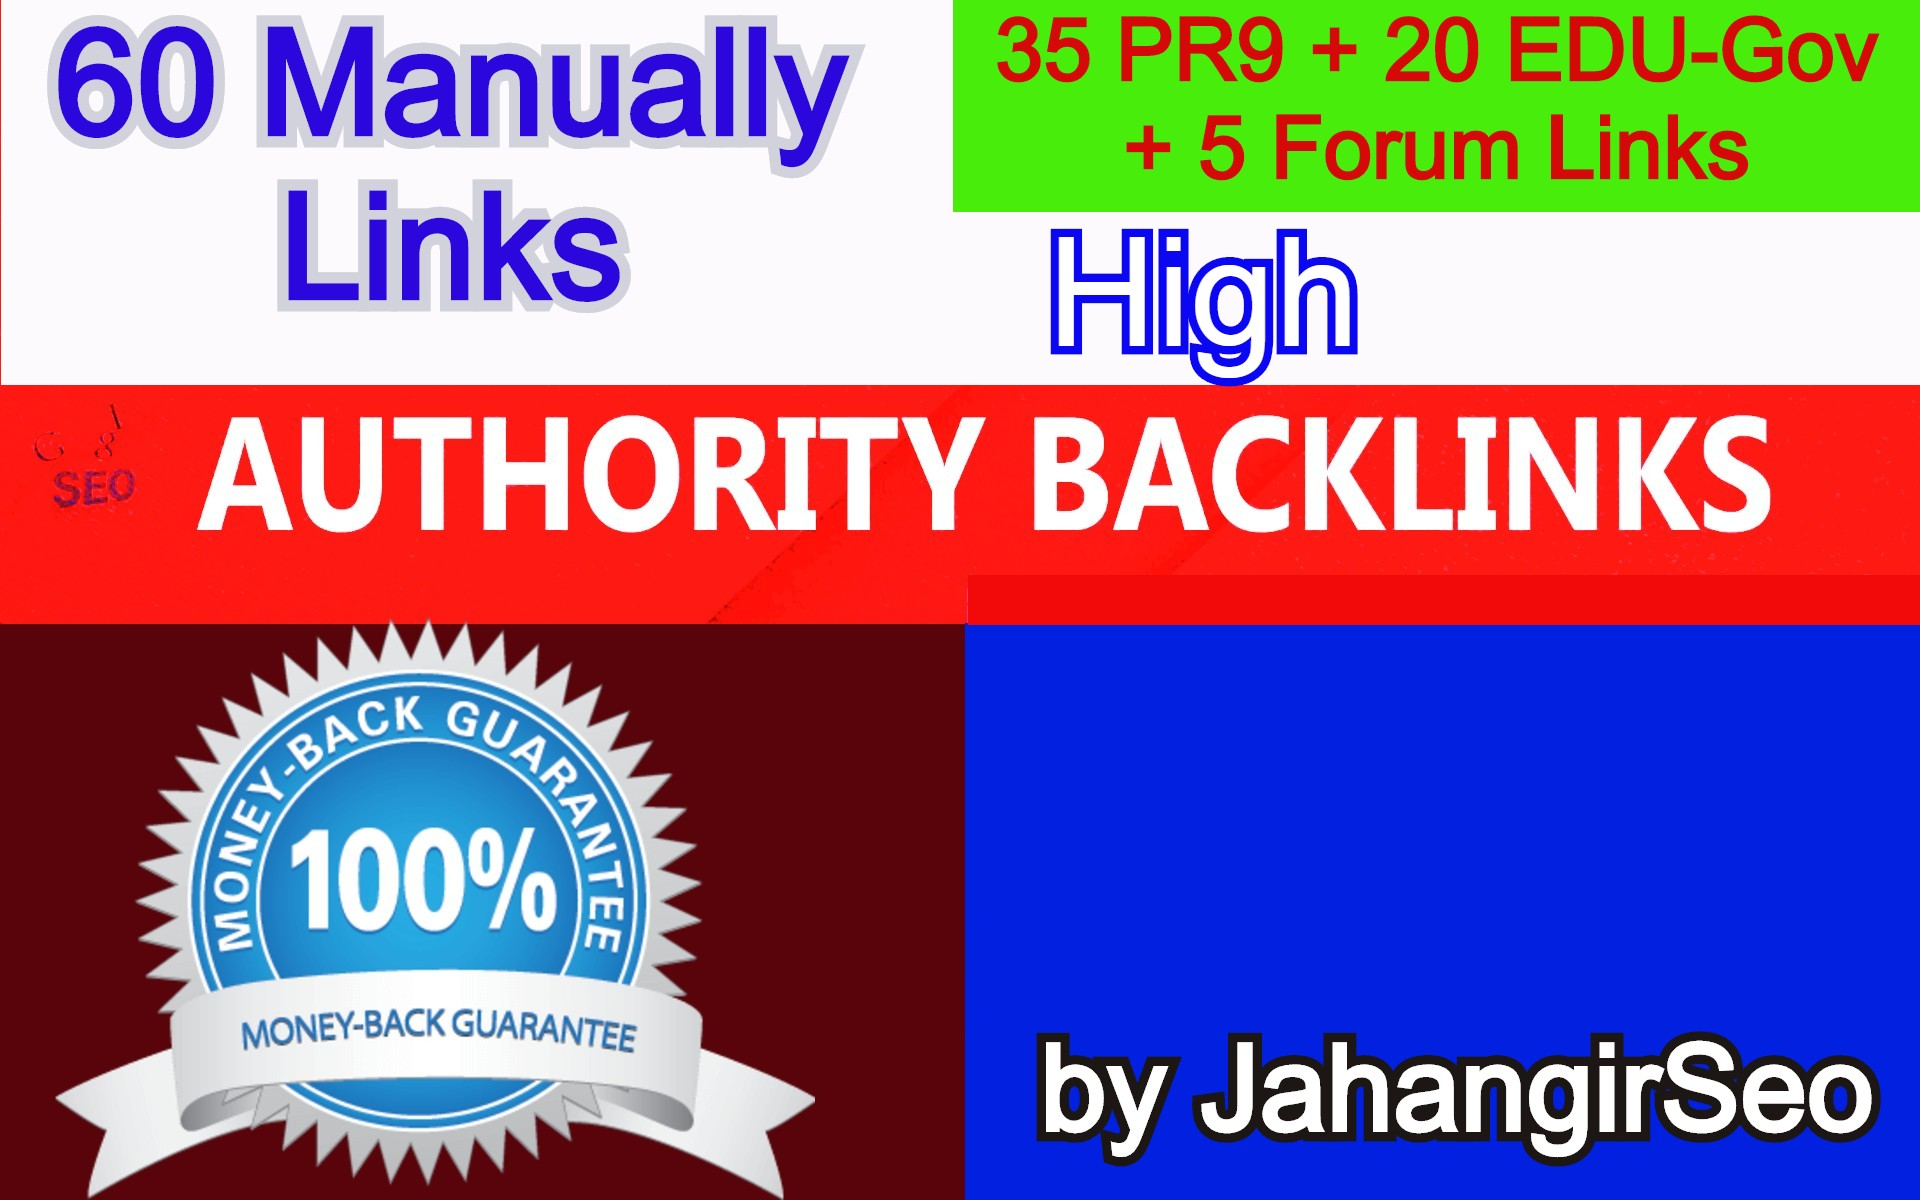 60 High Authority Backlinks From 35 HQ Profile + 20 Edu-Gov Profile + 5 Forum Profile Links